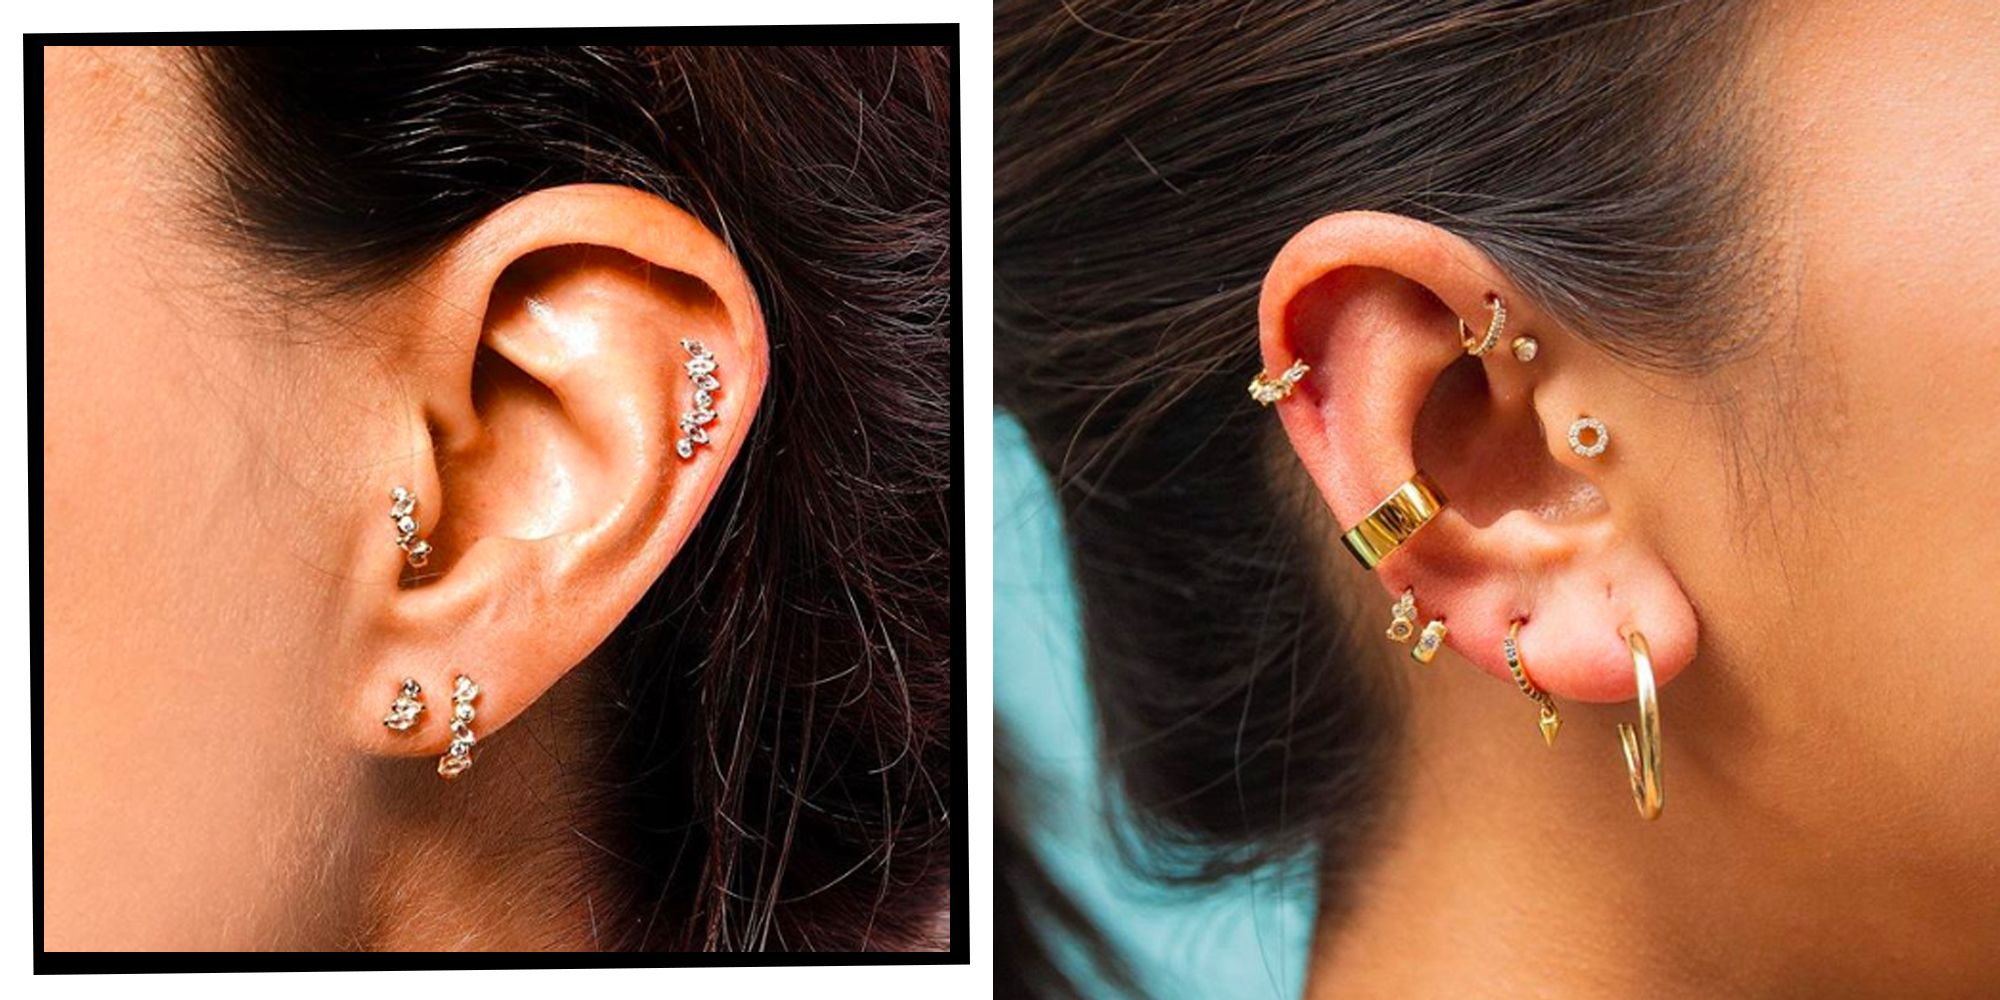 Tragus Piercing What You Need To Know From How Painful It Is To